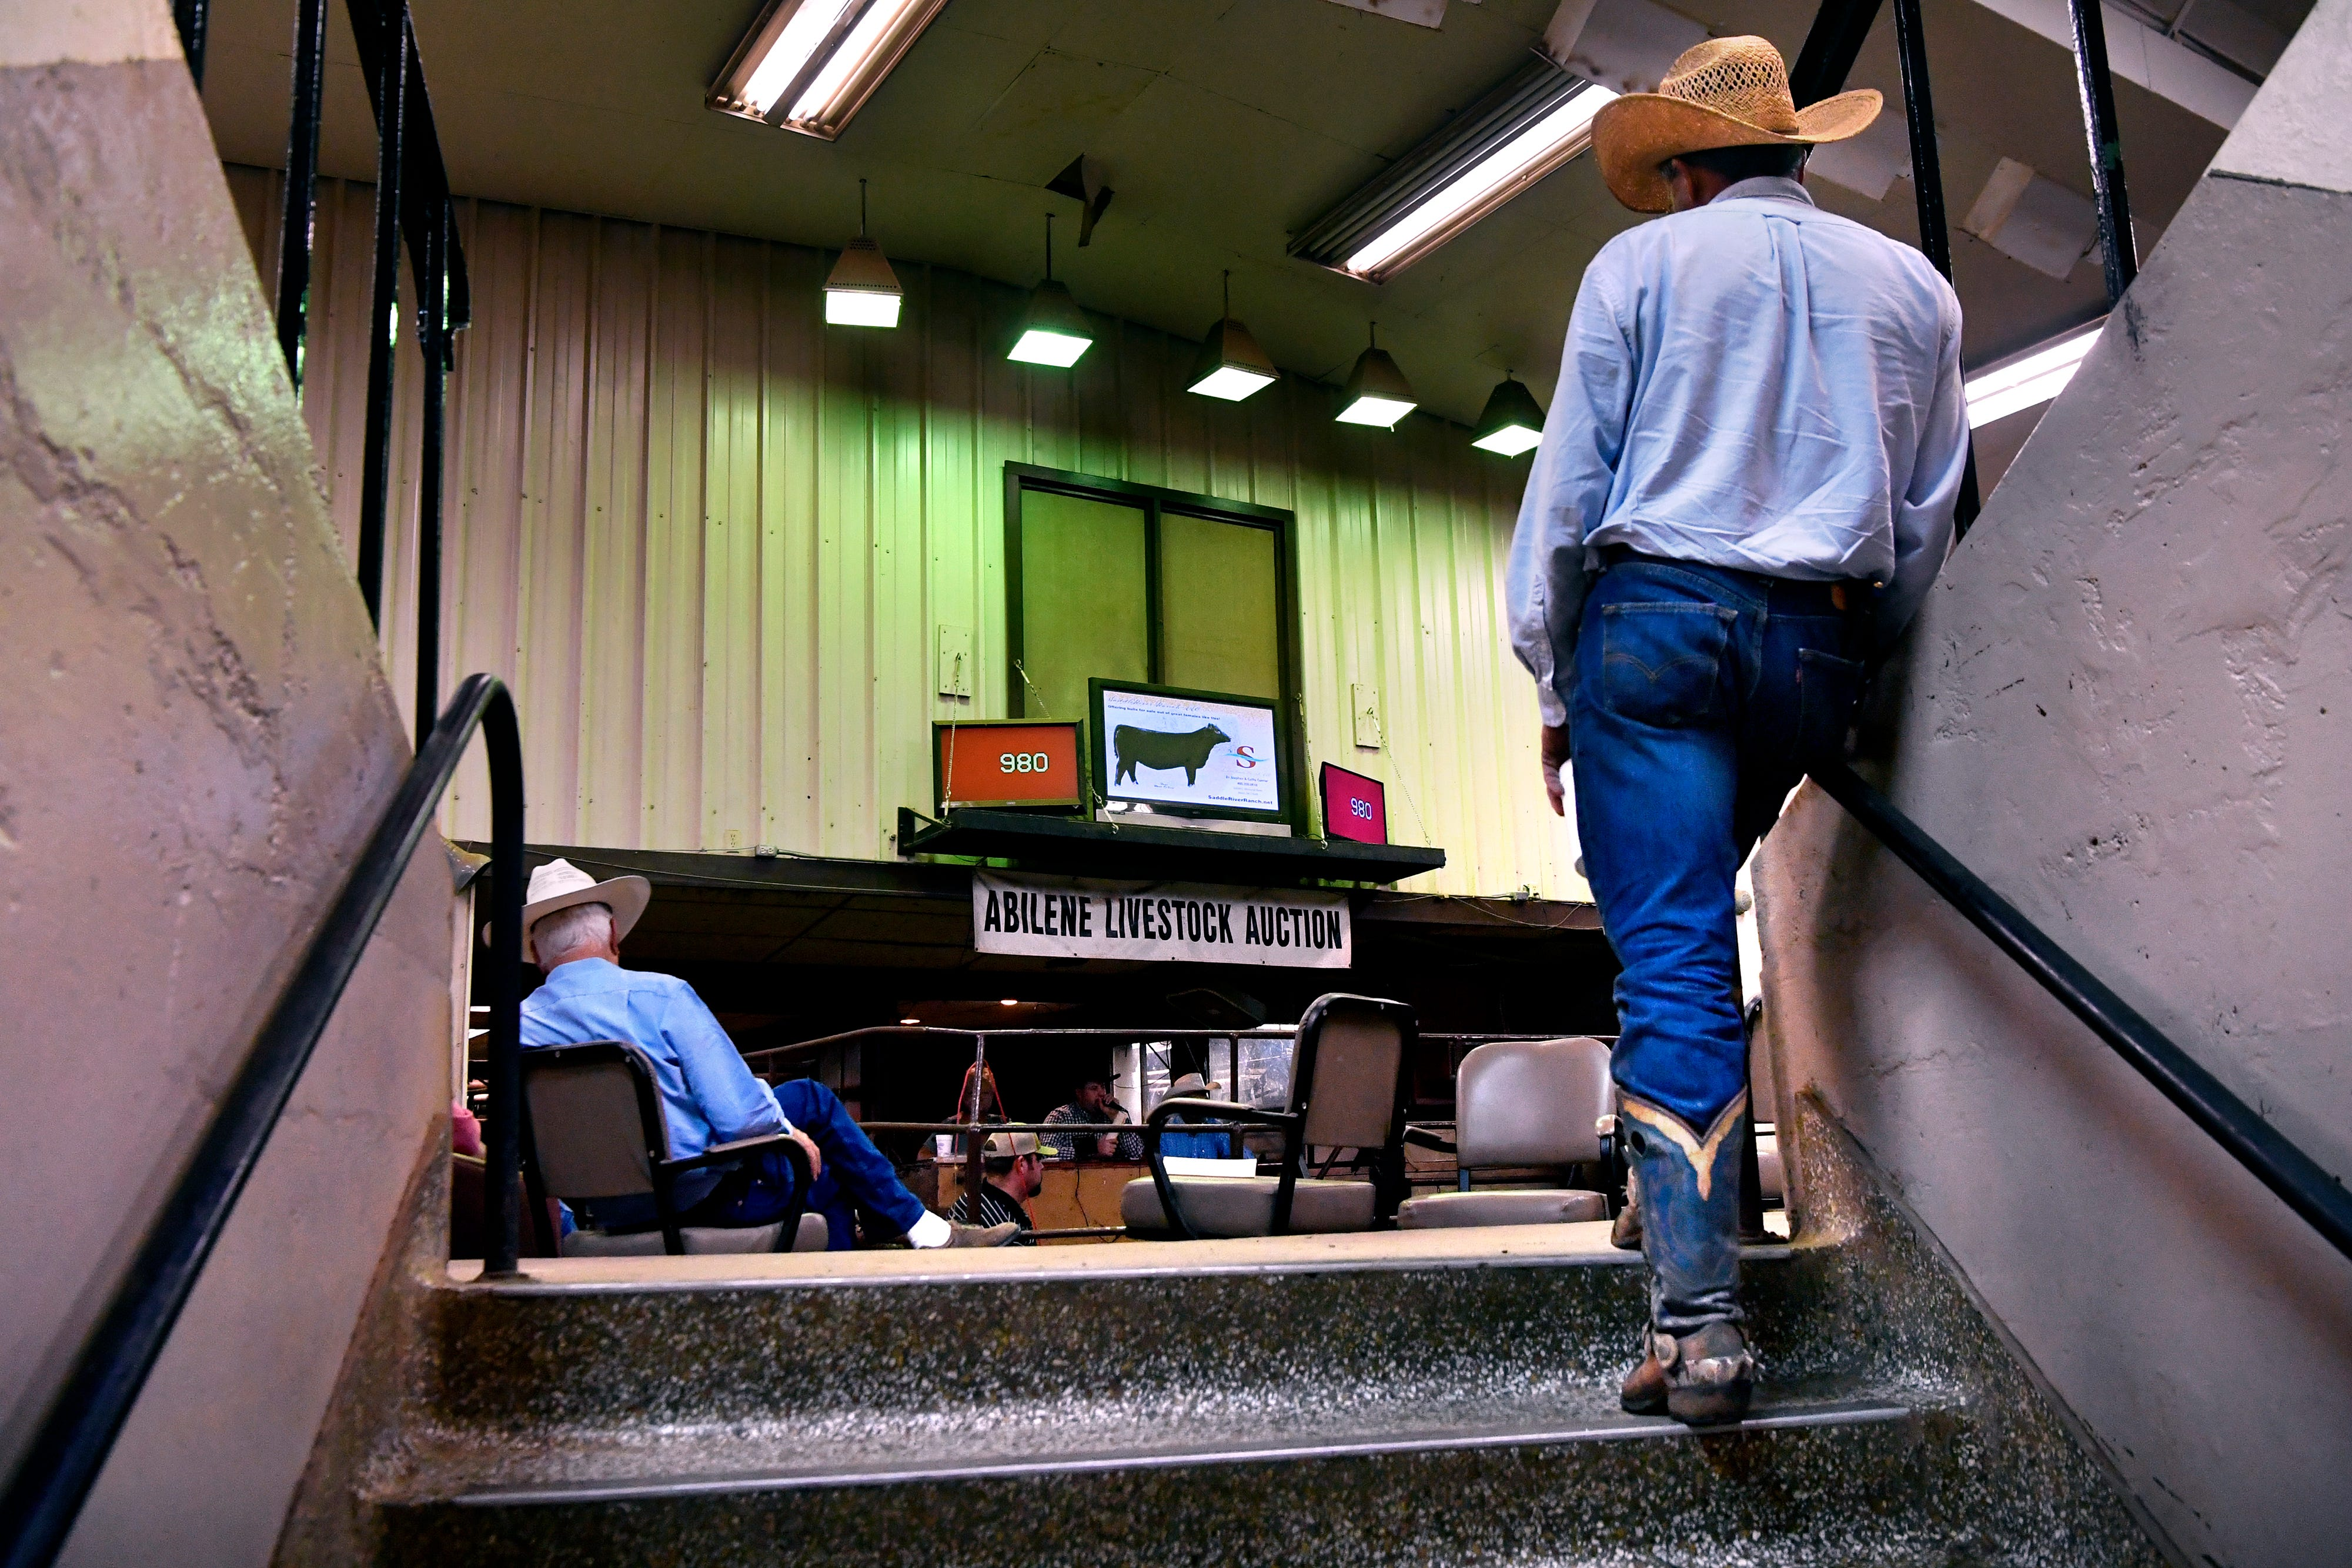 Buyers watch cattle and other livestock move through the sale ring at Abilene Livestock Auction Tuesday Sept. 4, 2018. Drought, a lack of forage in pastures, and the high price and scarcity of hay are driving some cattle producers into culling their herds. But many are counting on a wet winter to bring pastures and hay stores back to full strength.